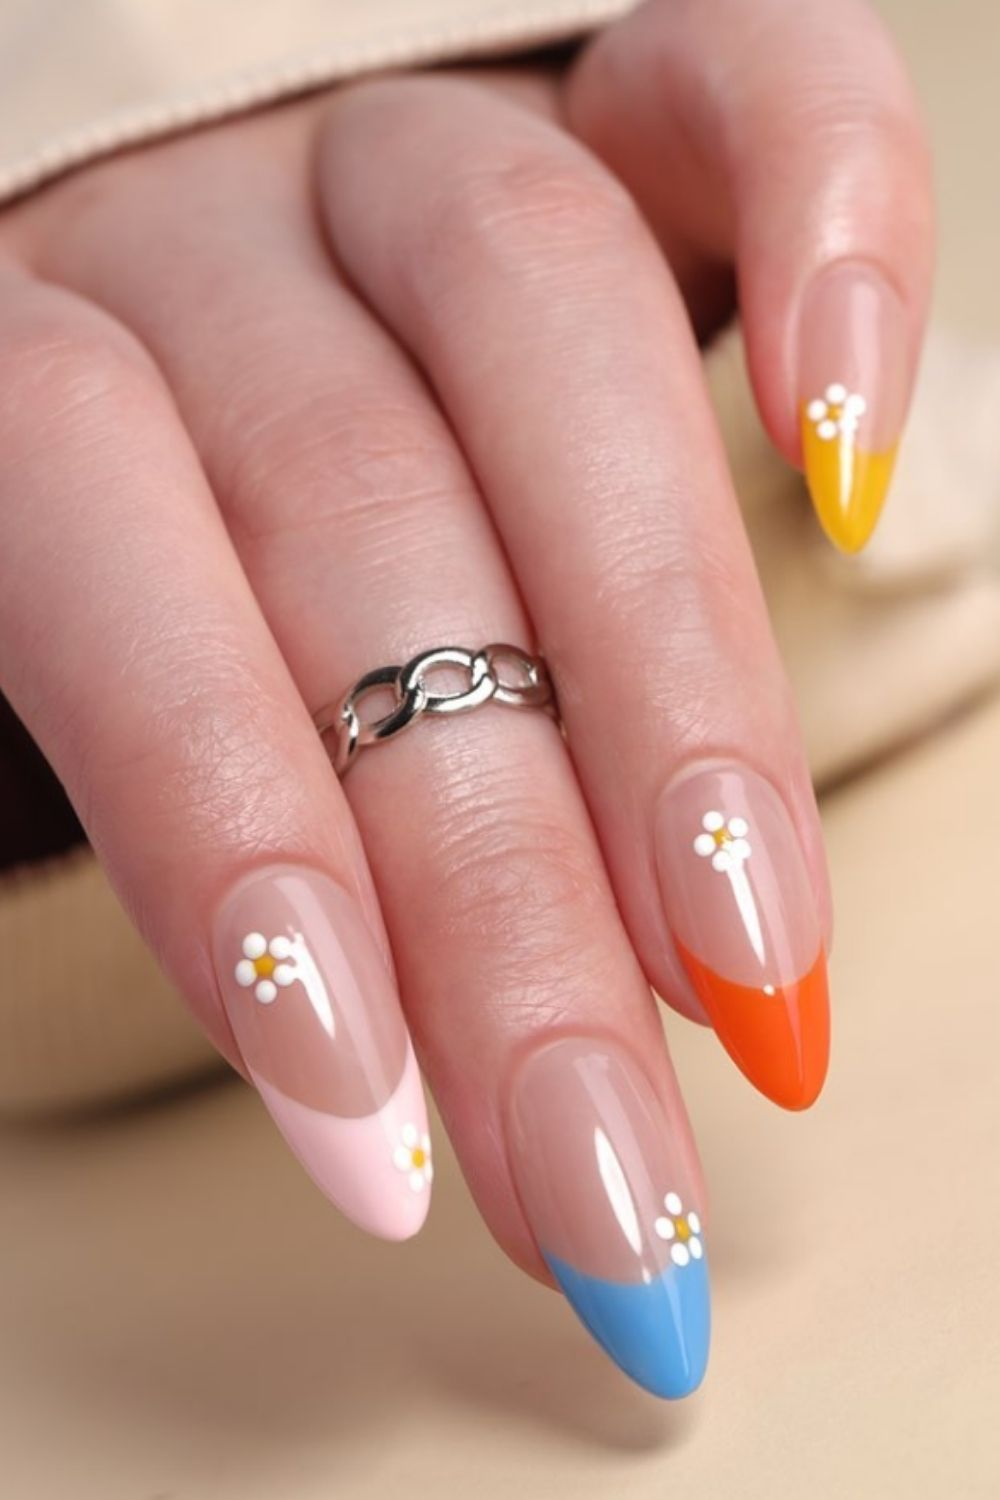 Cute almond nails with flowers